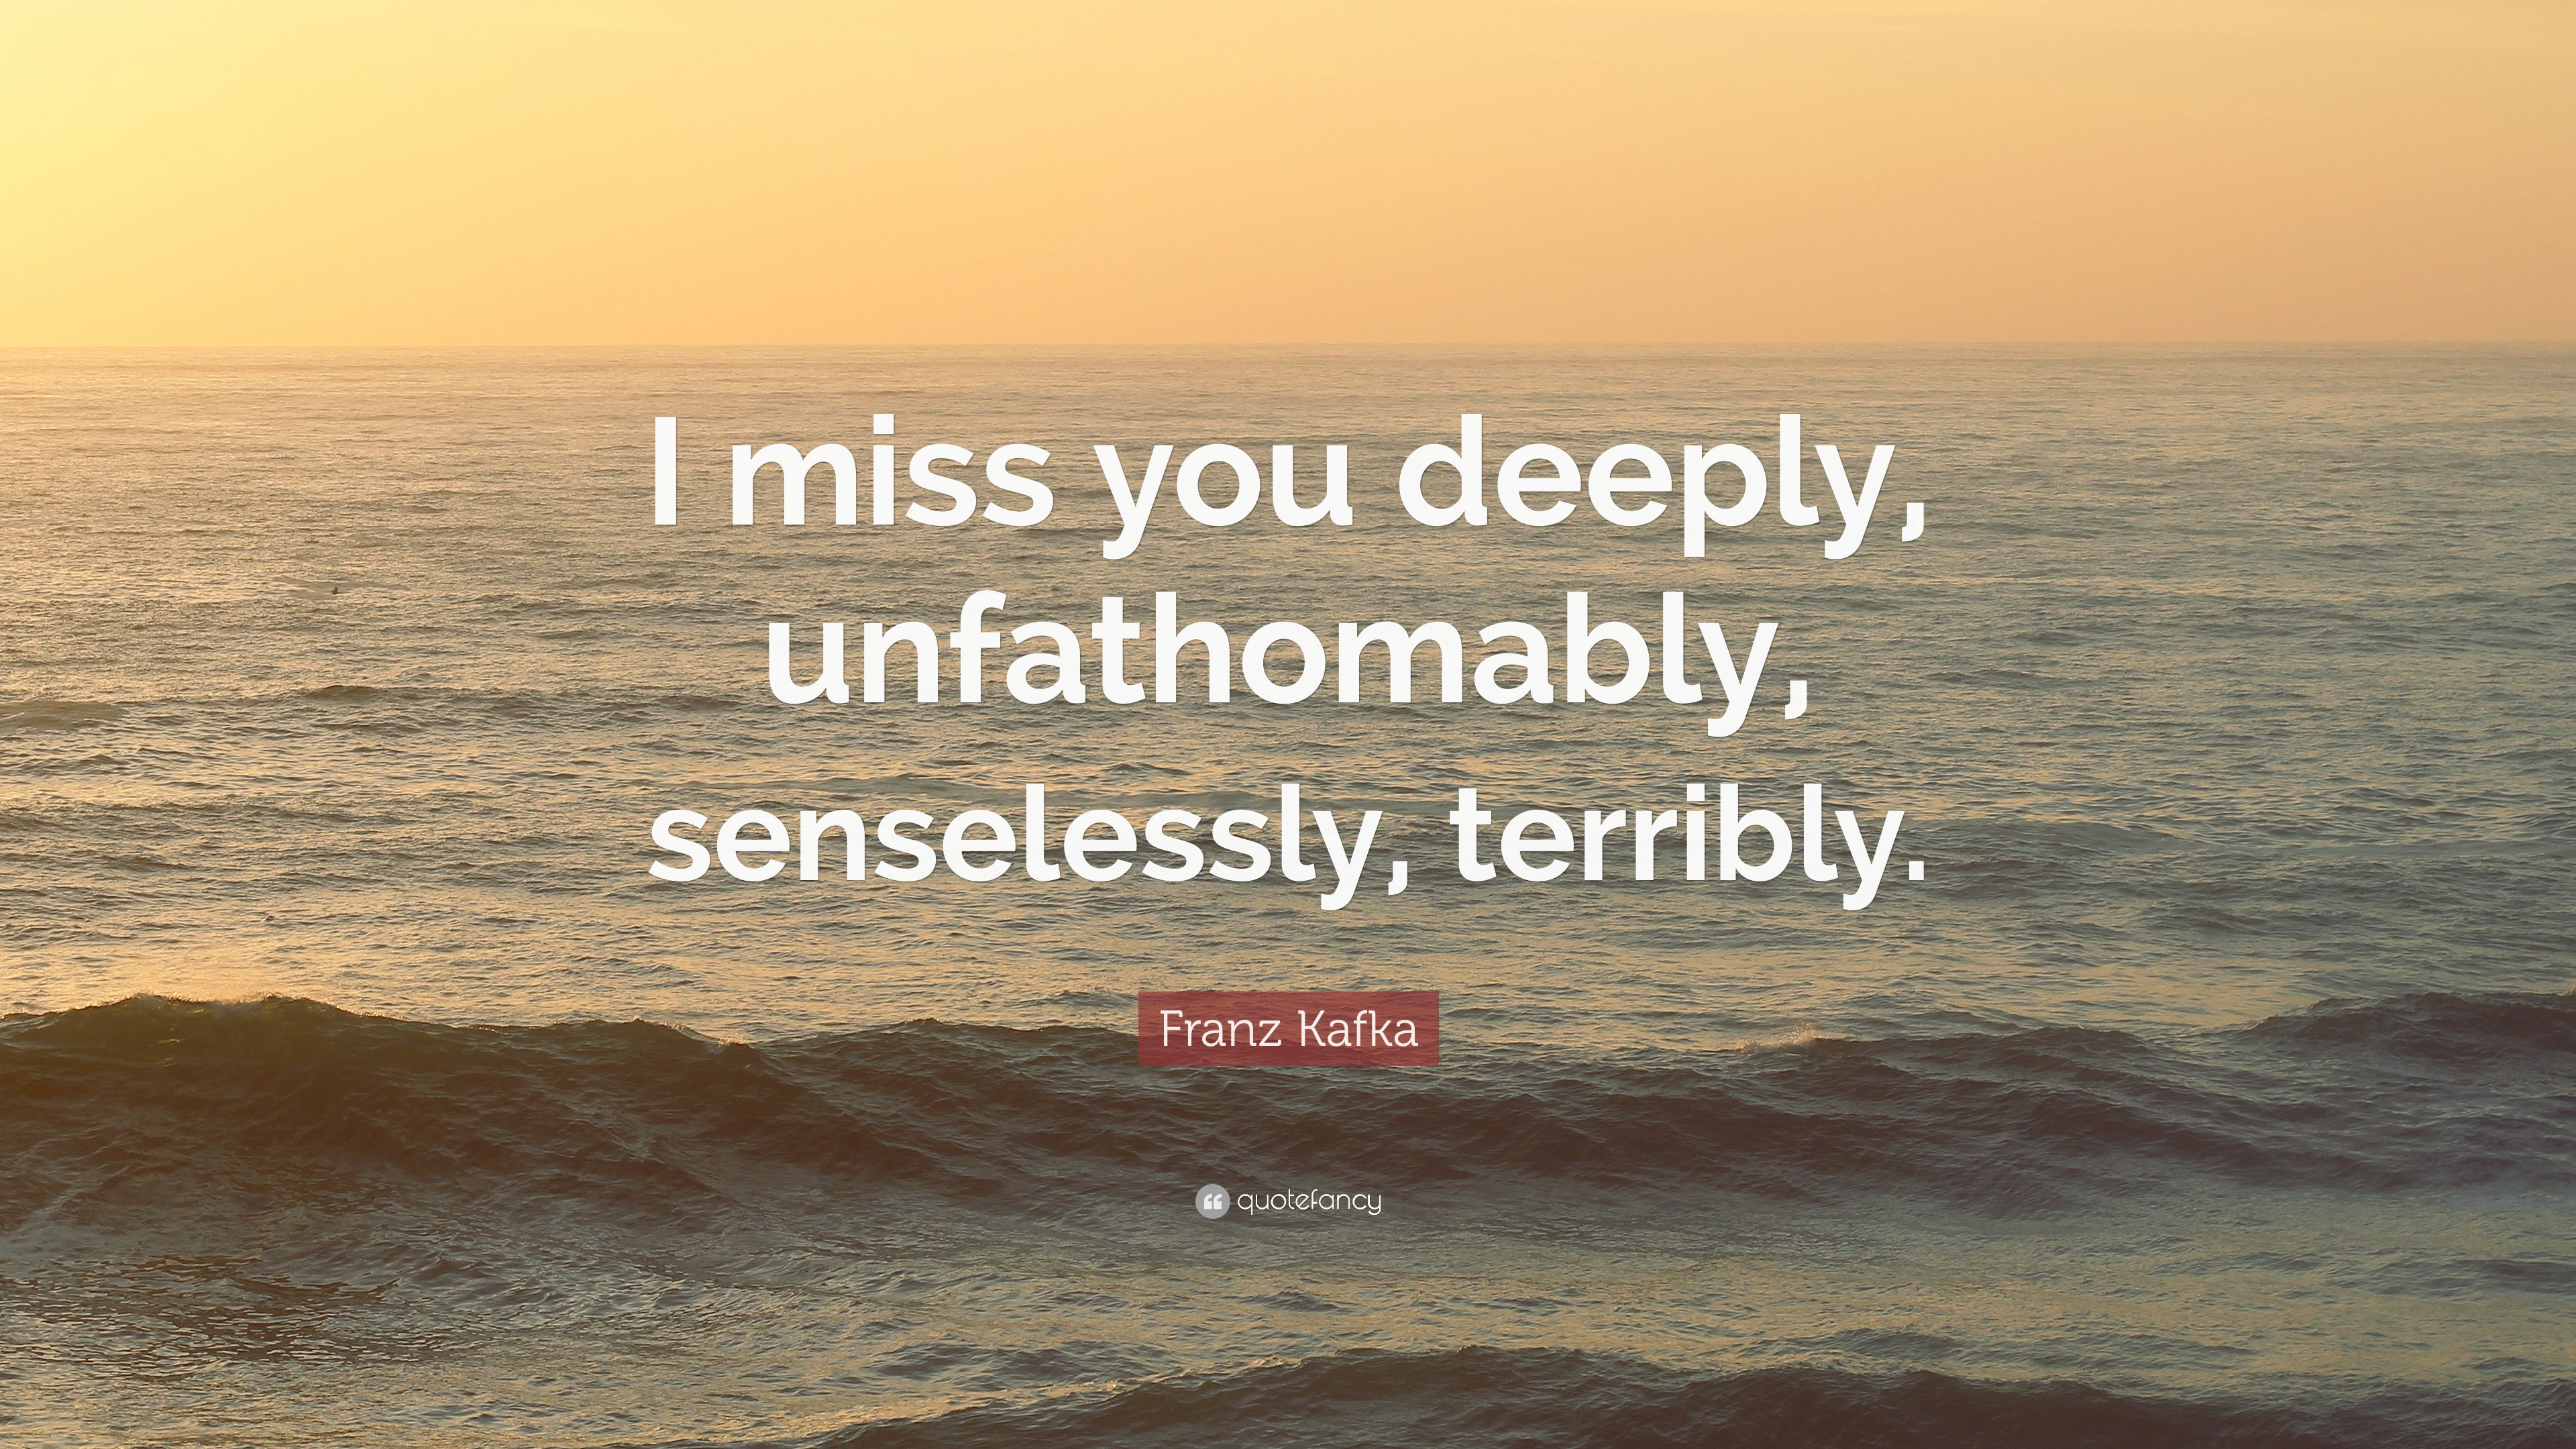 I miss you deeply